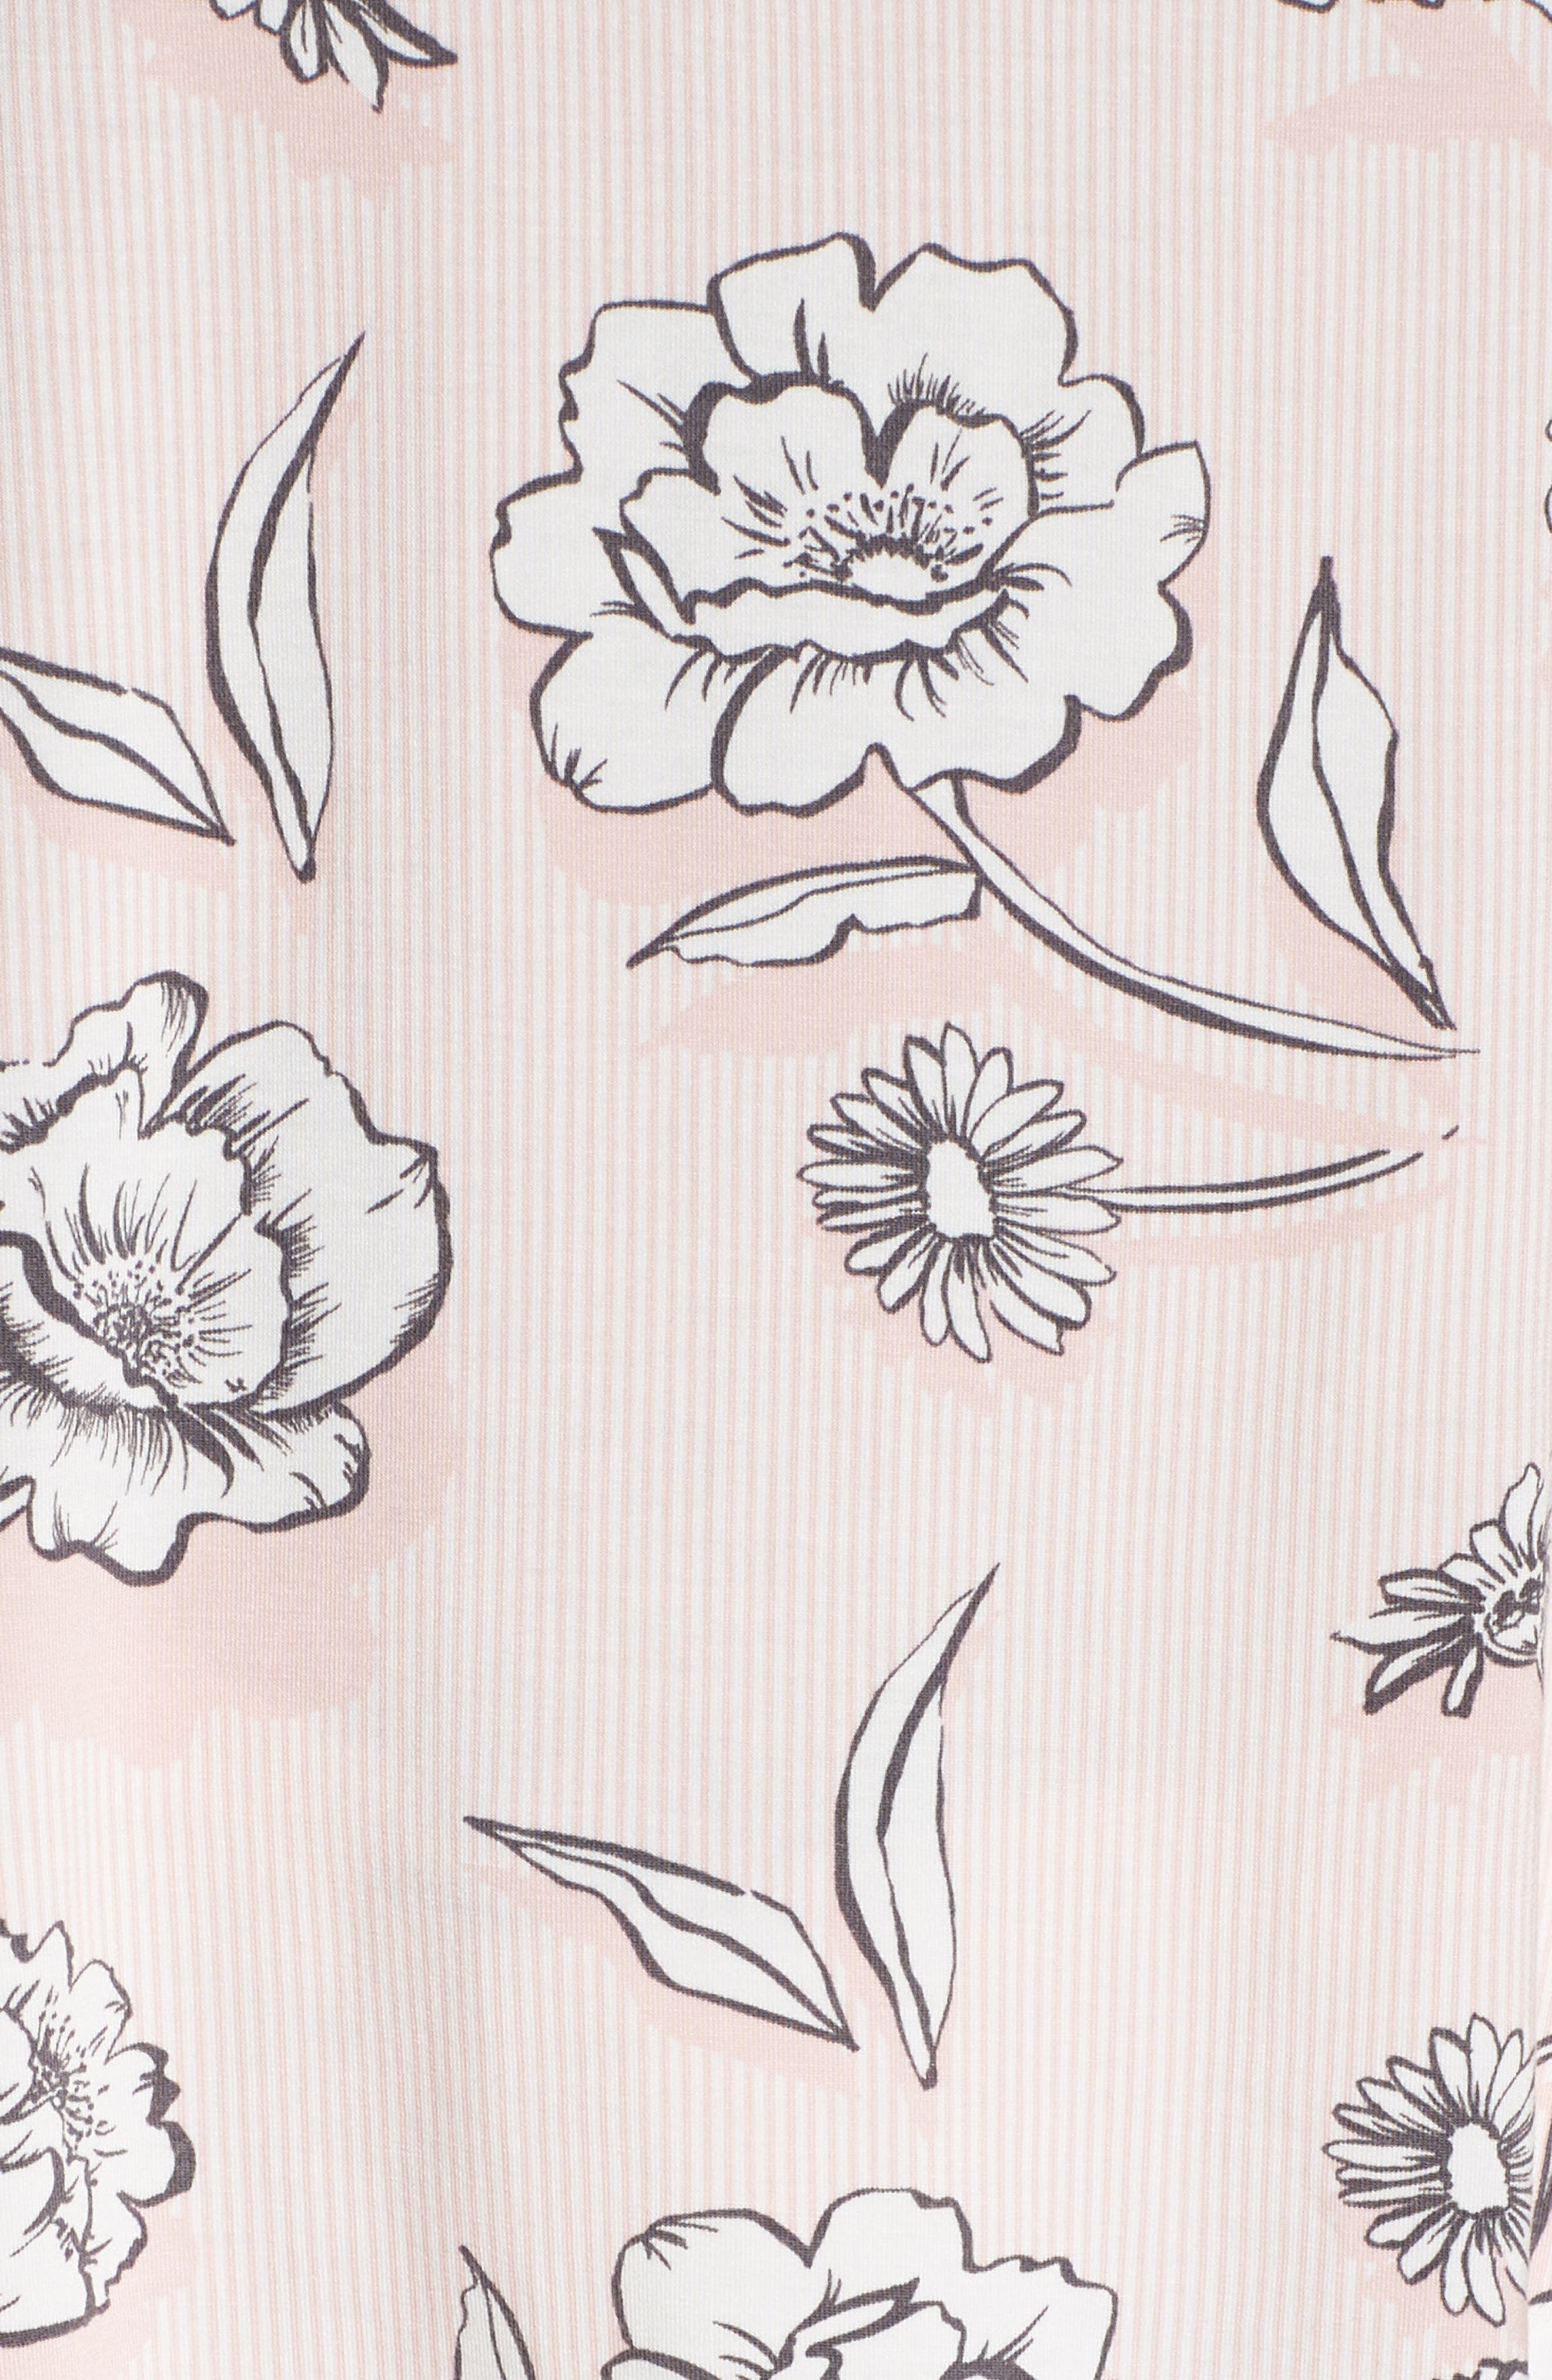 Shadow Floral Camisole,                             Alternate thumbnail 5, color,                             650